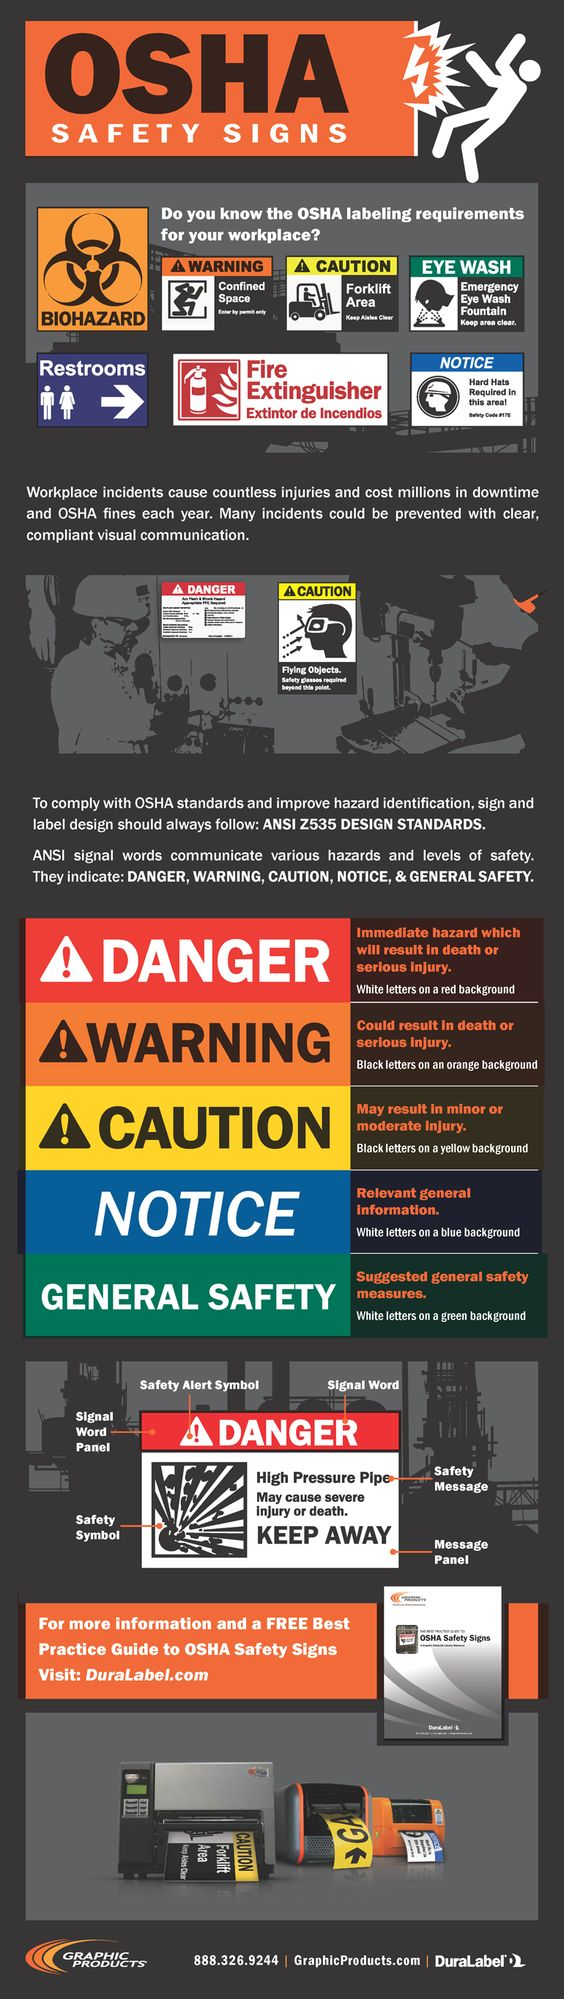 OSHA Safety Signs Occupational health and safety